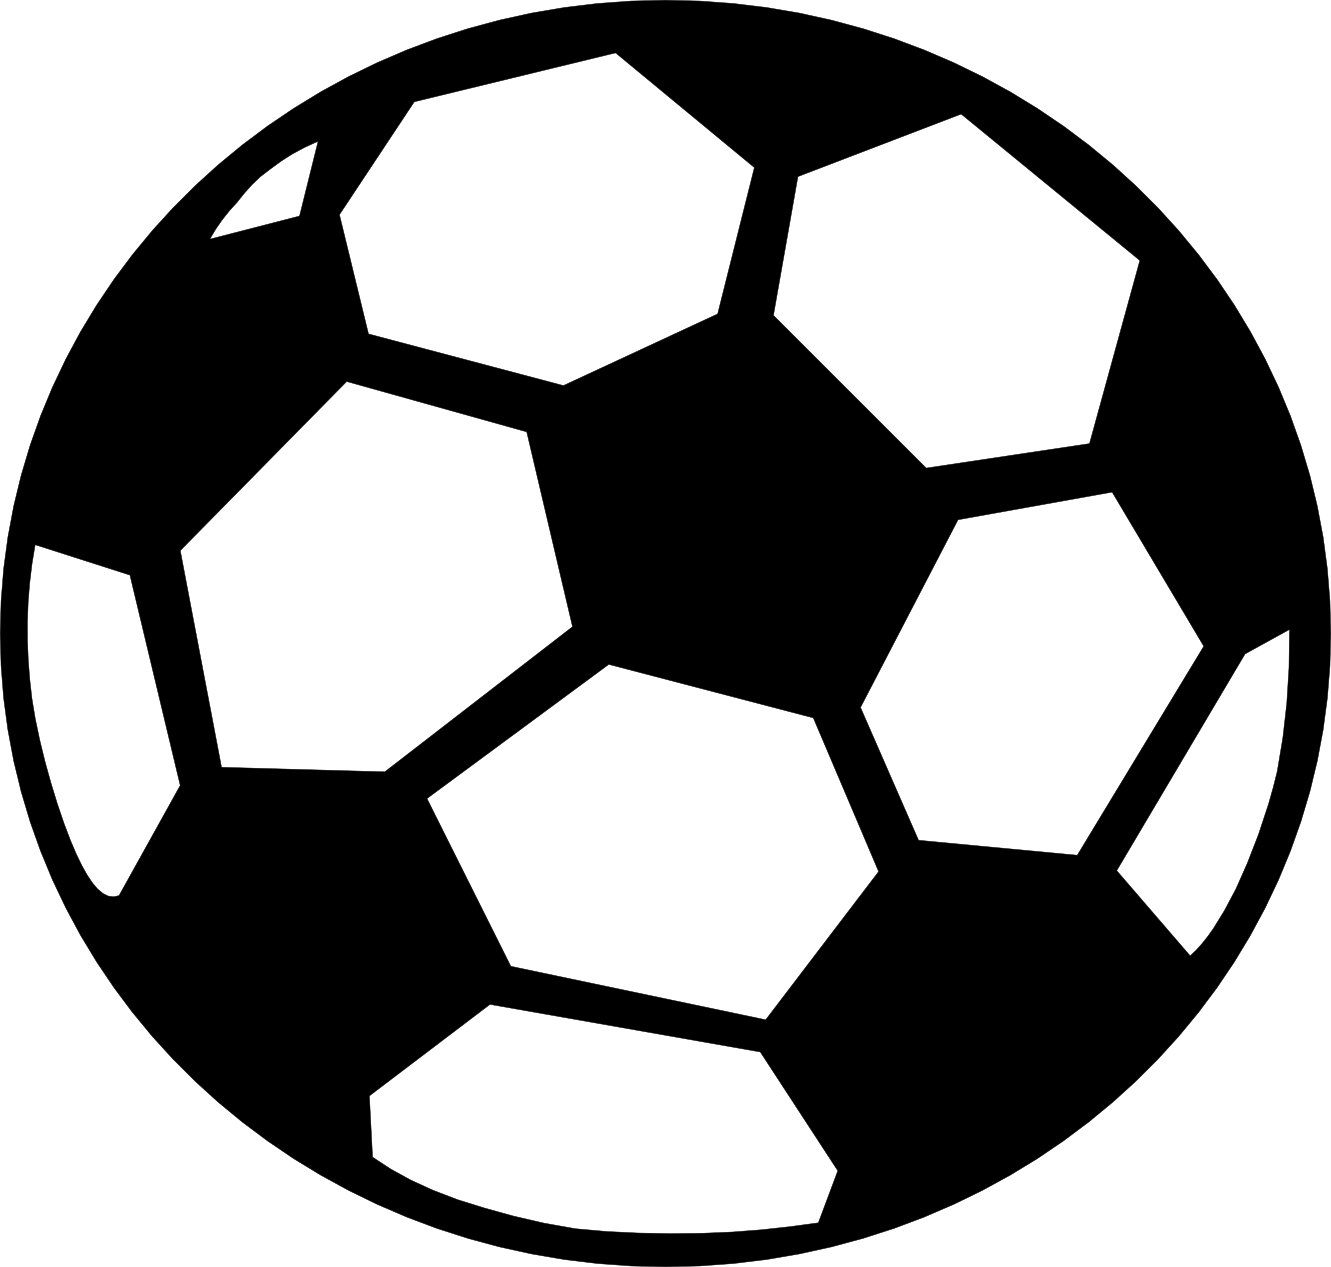 Clipart soccer ball free picture royalty free library Soccer Ball Clipart | Clipart Panda - Free Clipart Images picture royalty free library